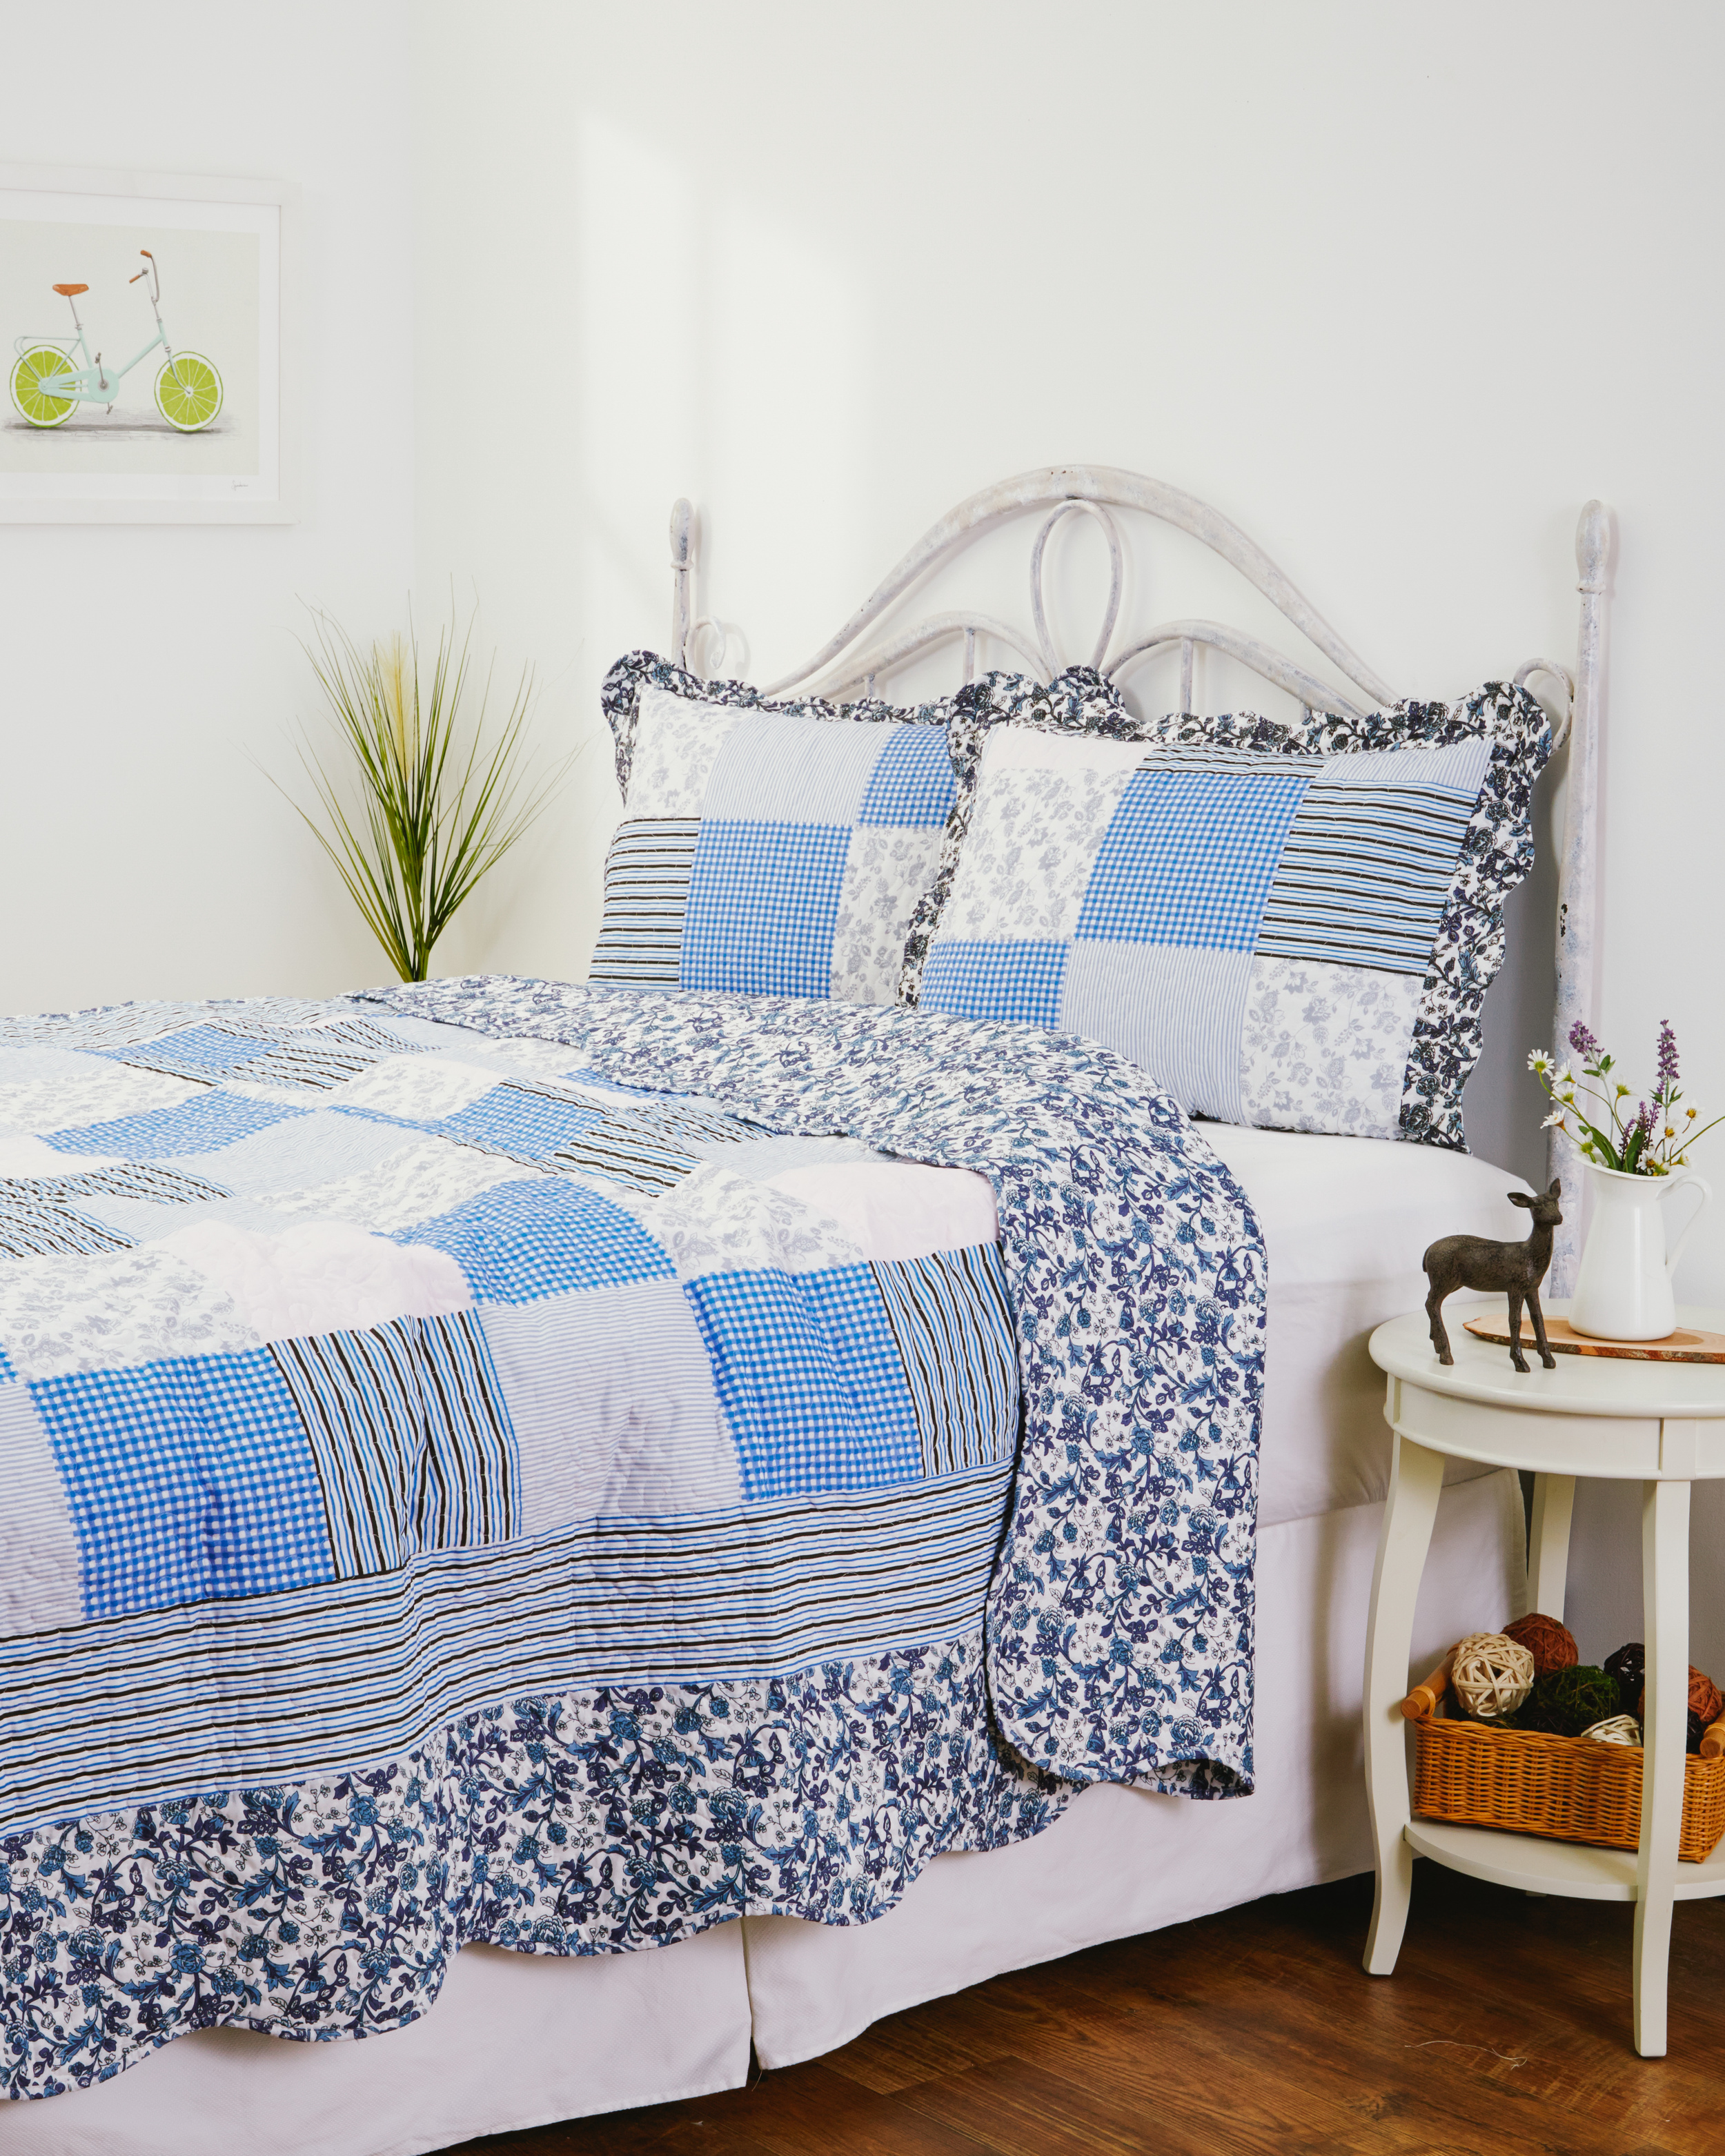 zulily_product-3.jpg